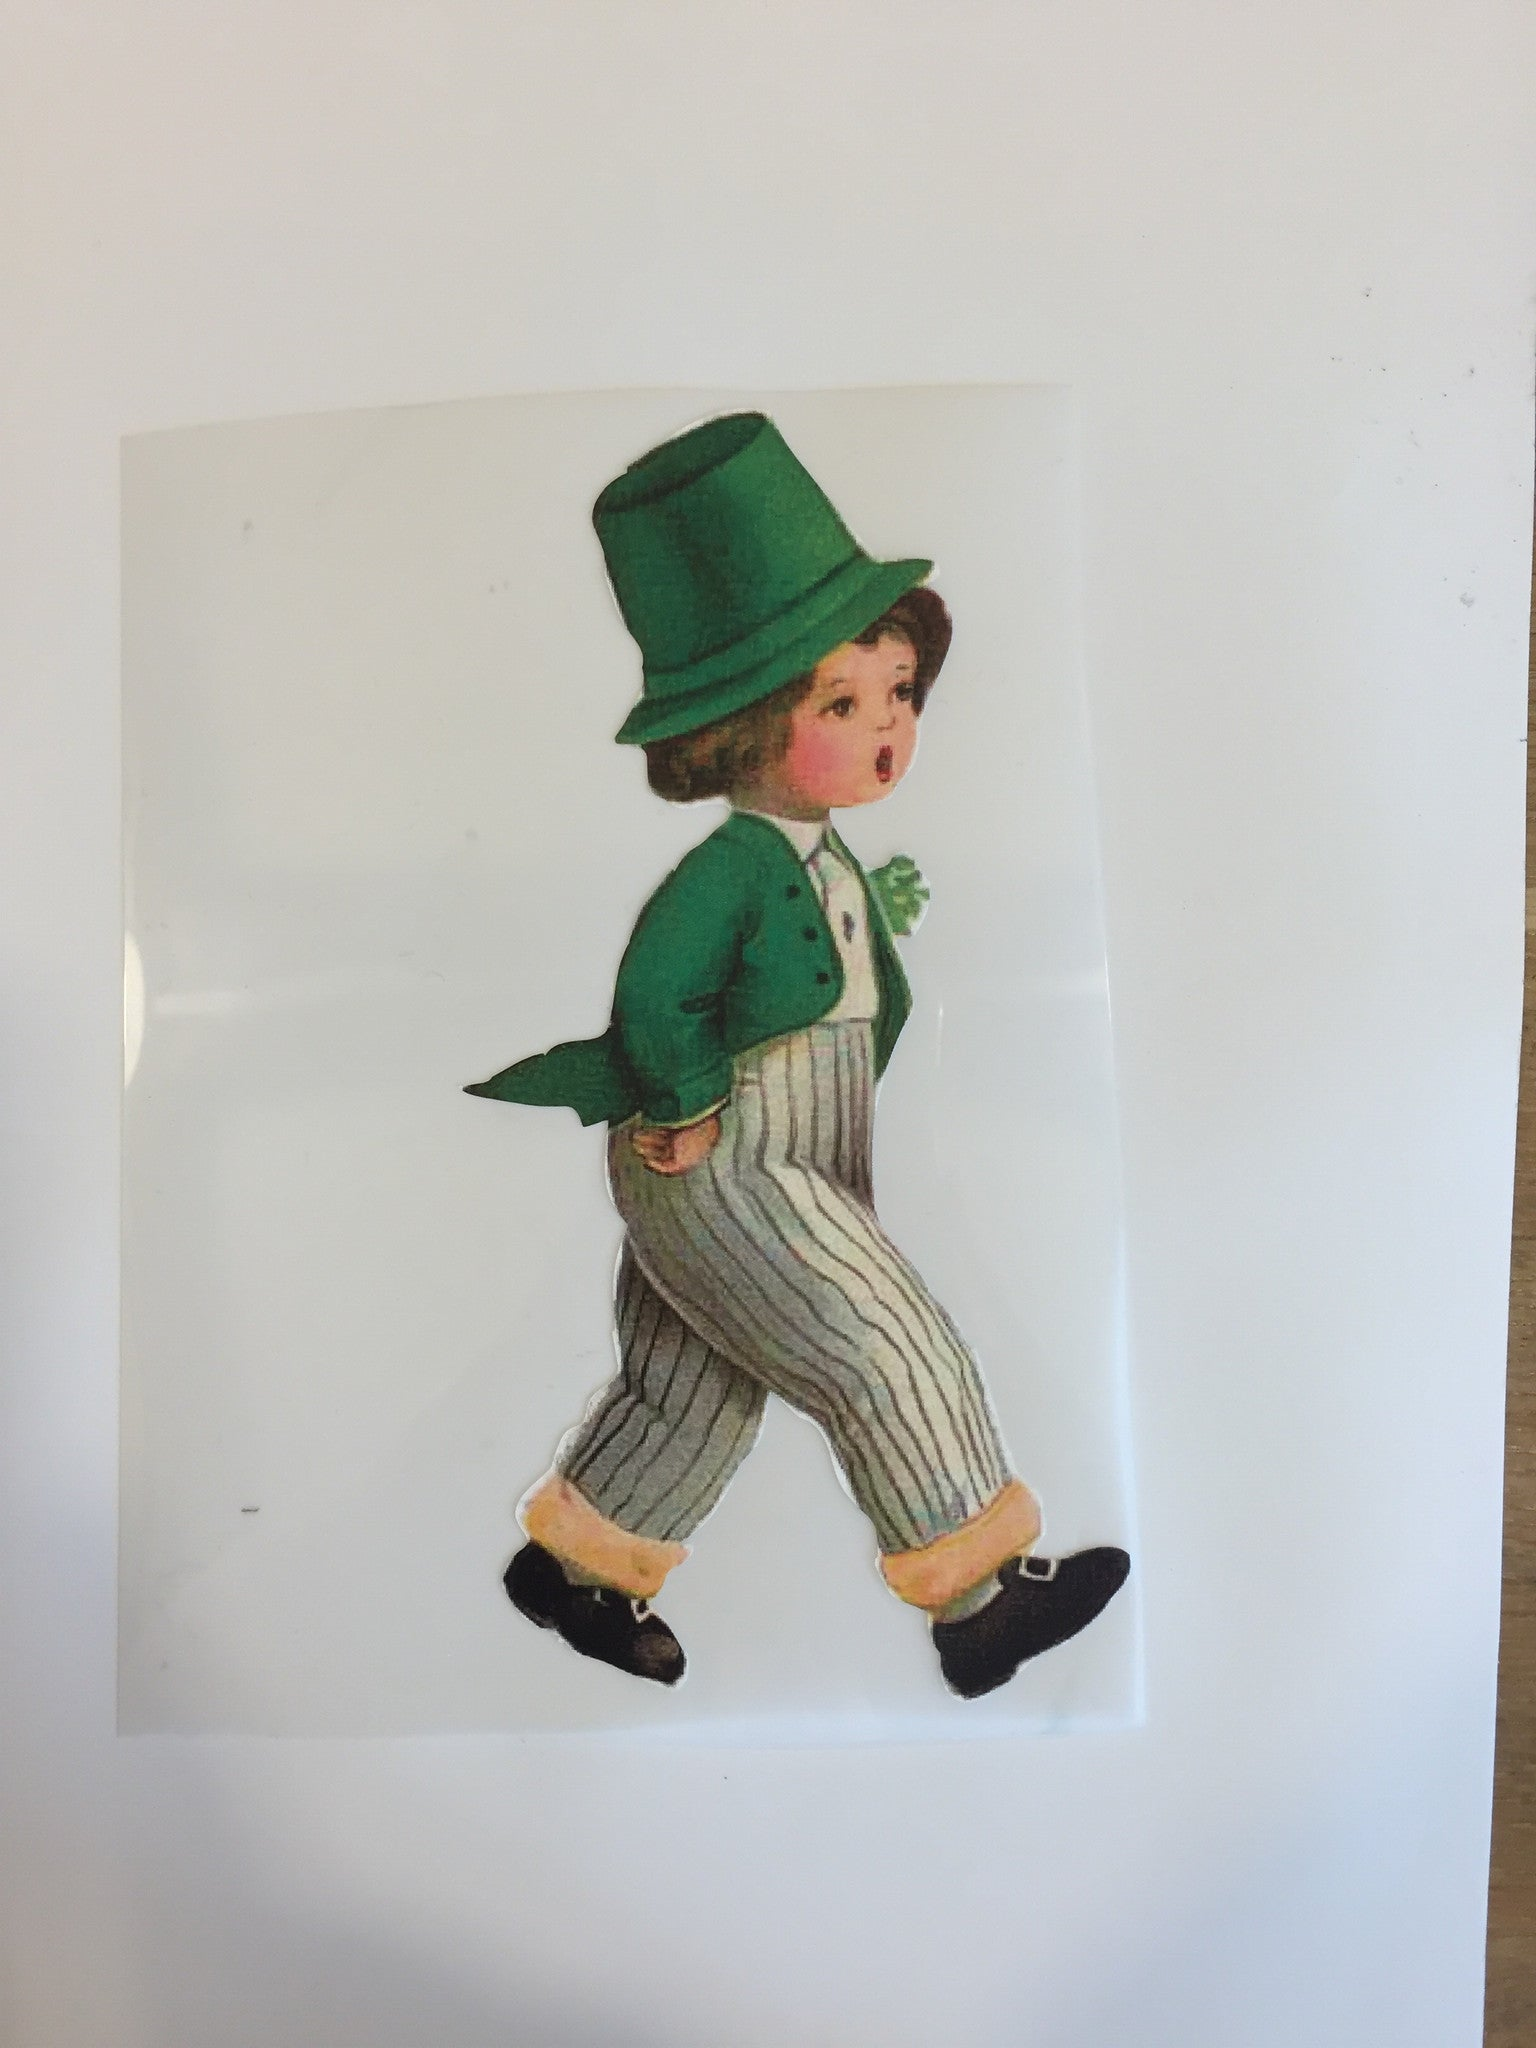 St. Patricks Day Custom Printed Transfers